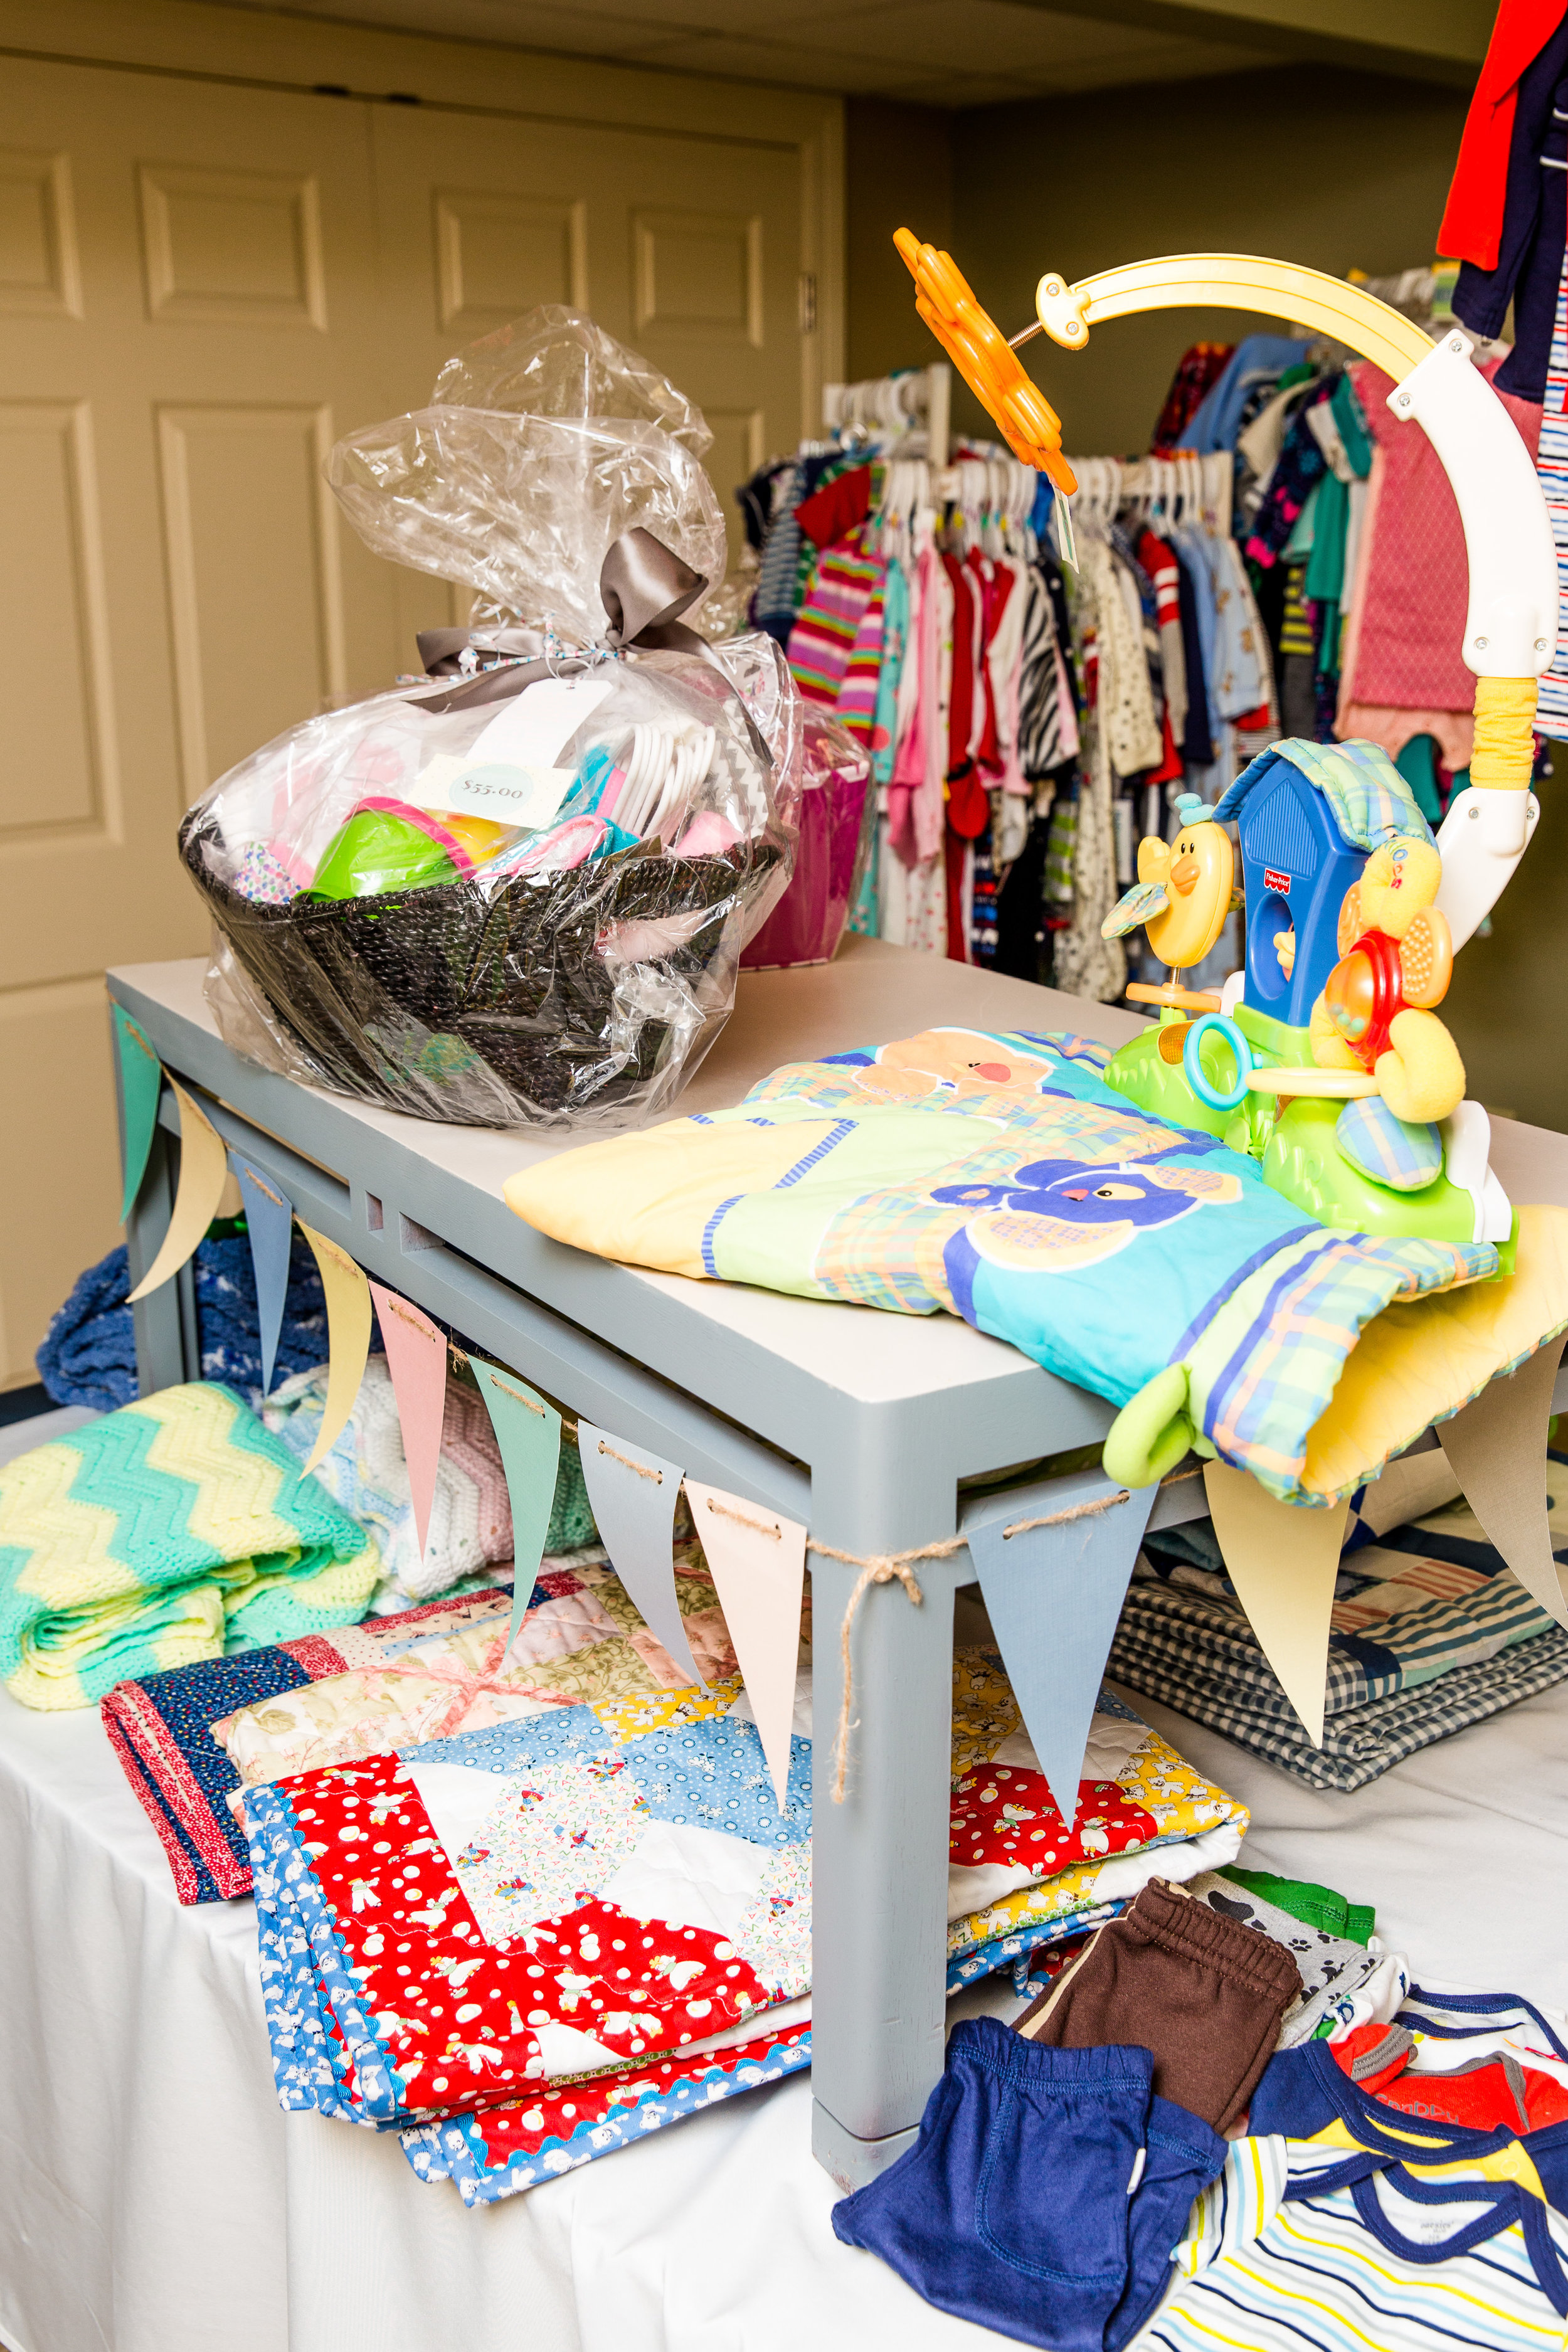 Baby Boutique basket on table.jpg